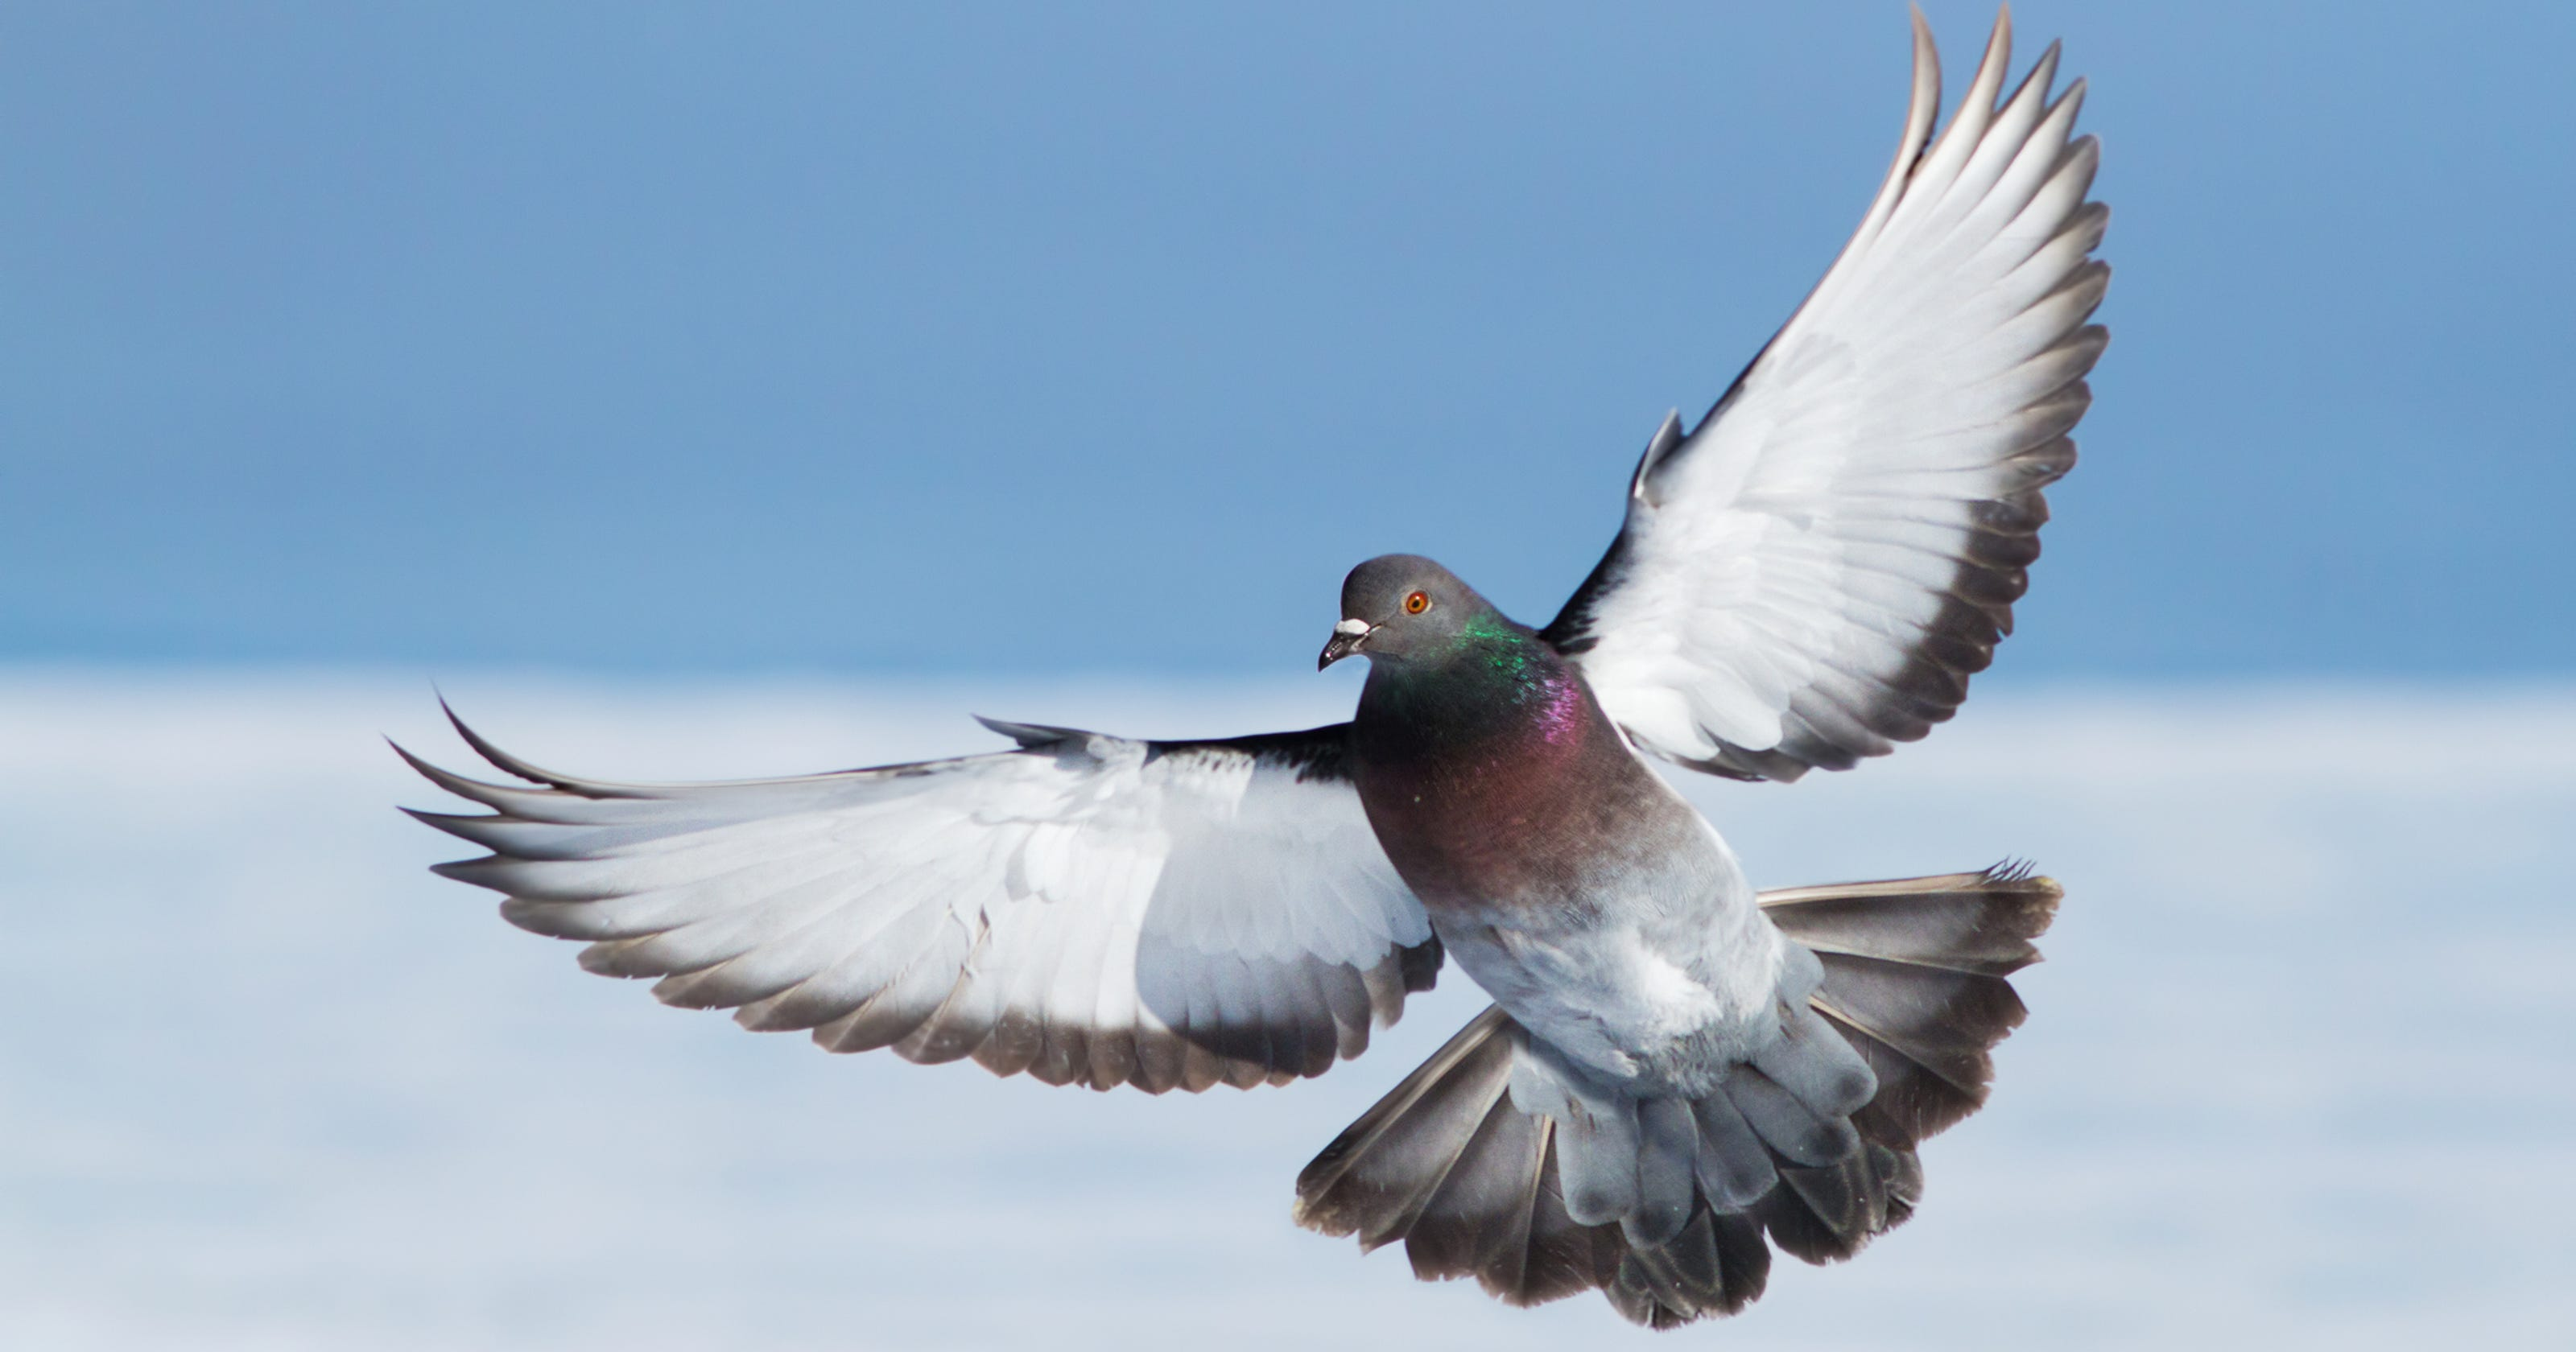 Outdoors Dove Hunting Season In Ny Theres A Chance